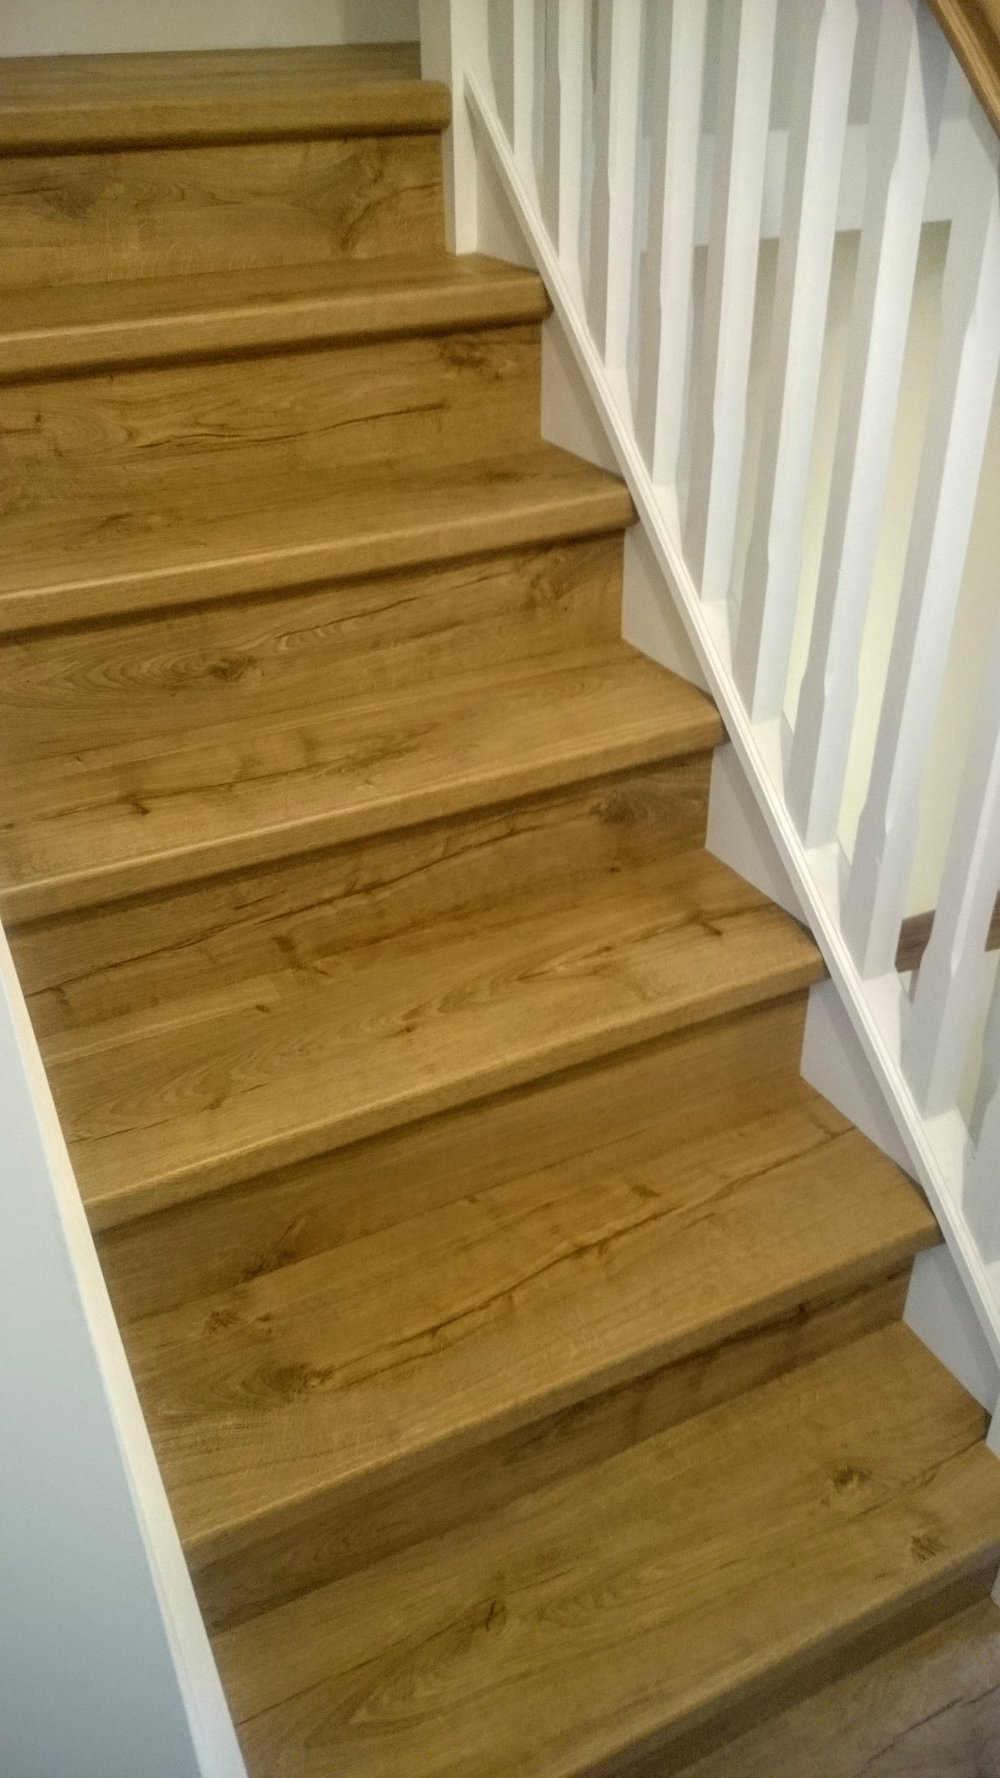 Quick-Step Impressive laminate stairs by www.bargainflooring.ie  supplied and fitted at Parkside Homes New Development (Balgriffin) , http://parksidehomes.ie/ , off Malahide road , Dublin 13